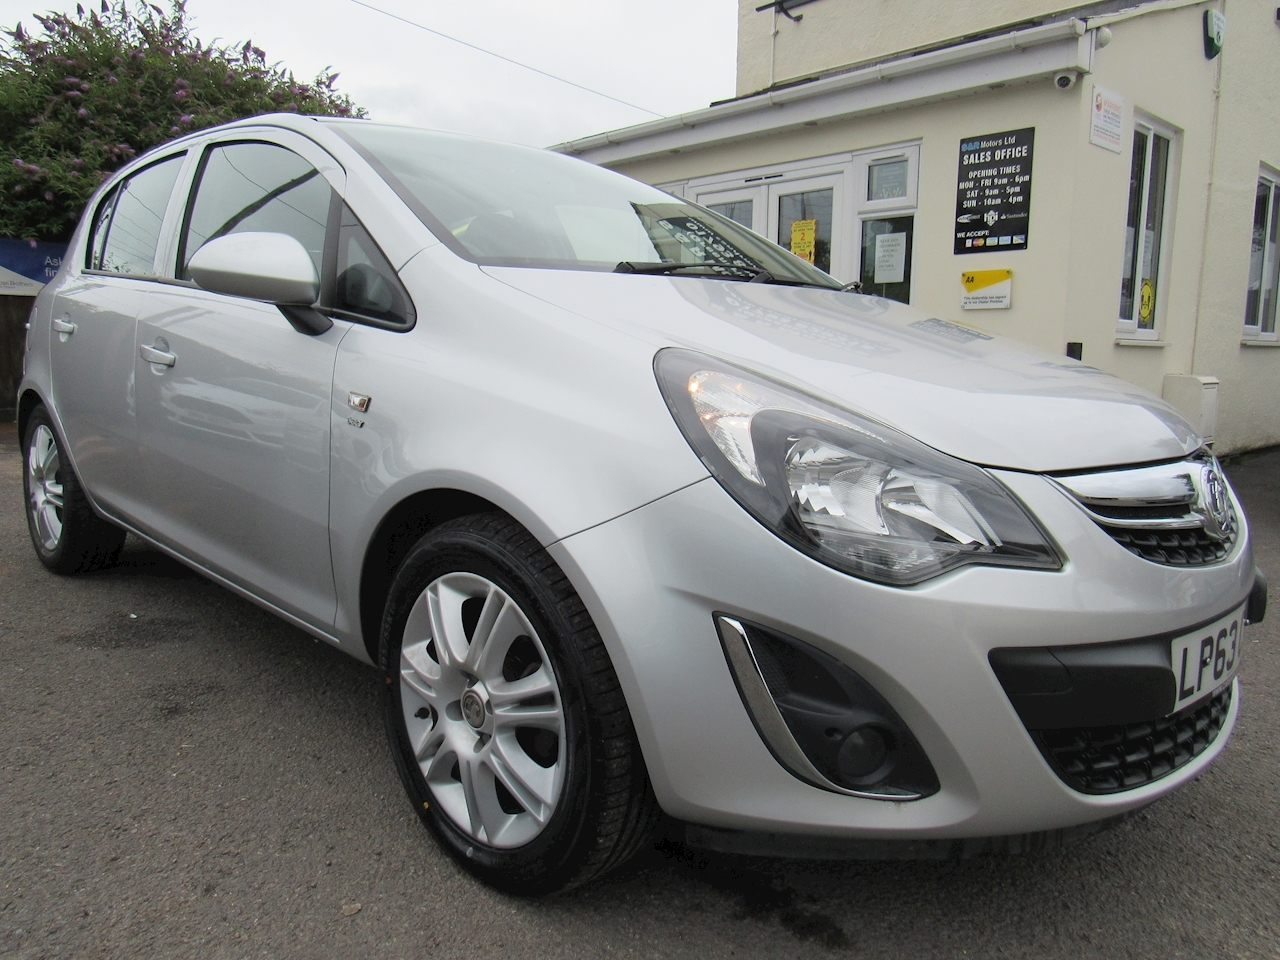 Vauxhall Corsa Energy Hatchback 1.2 Manual Petrol